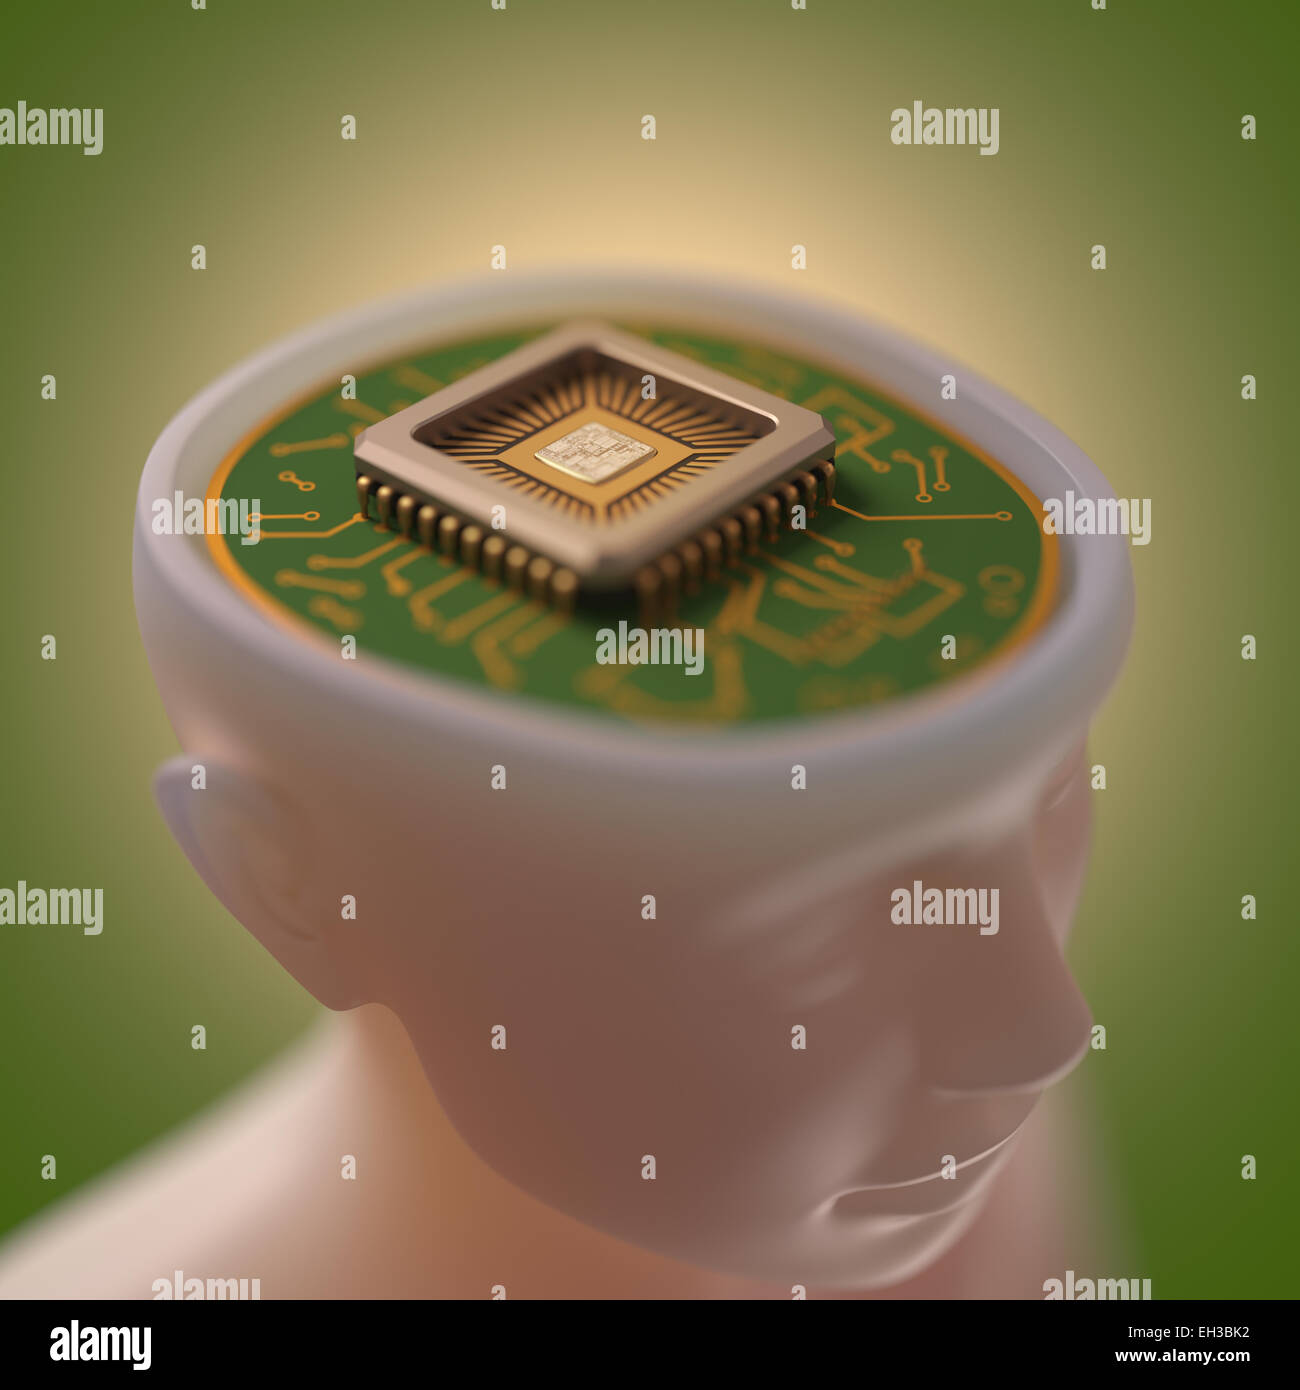 Microprocessor in the head. Concept of science and technology. - Stock Image